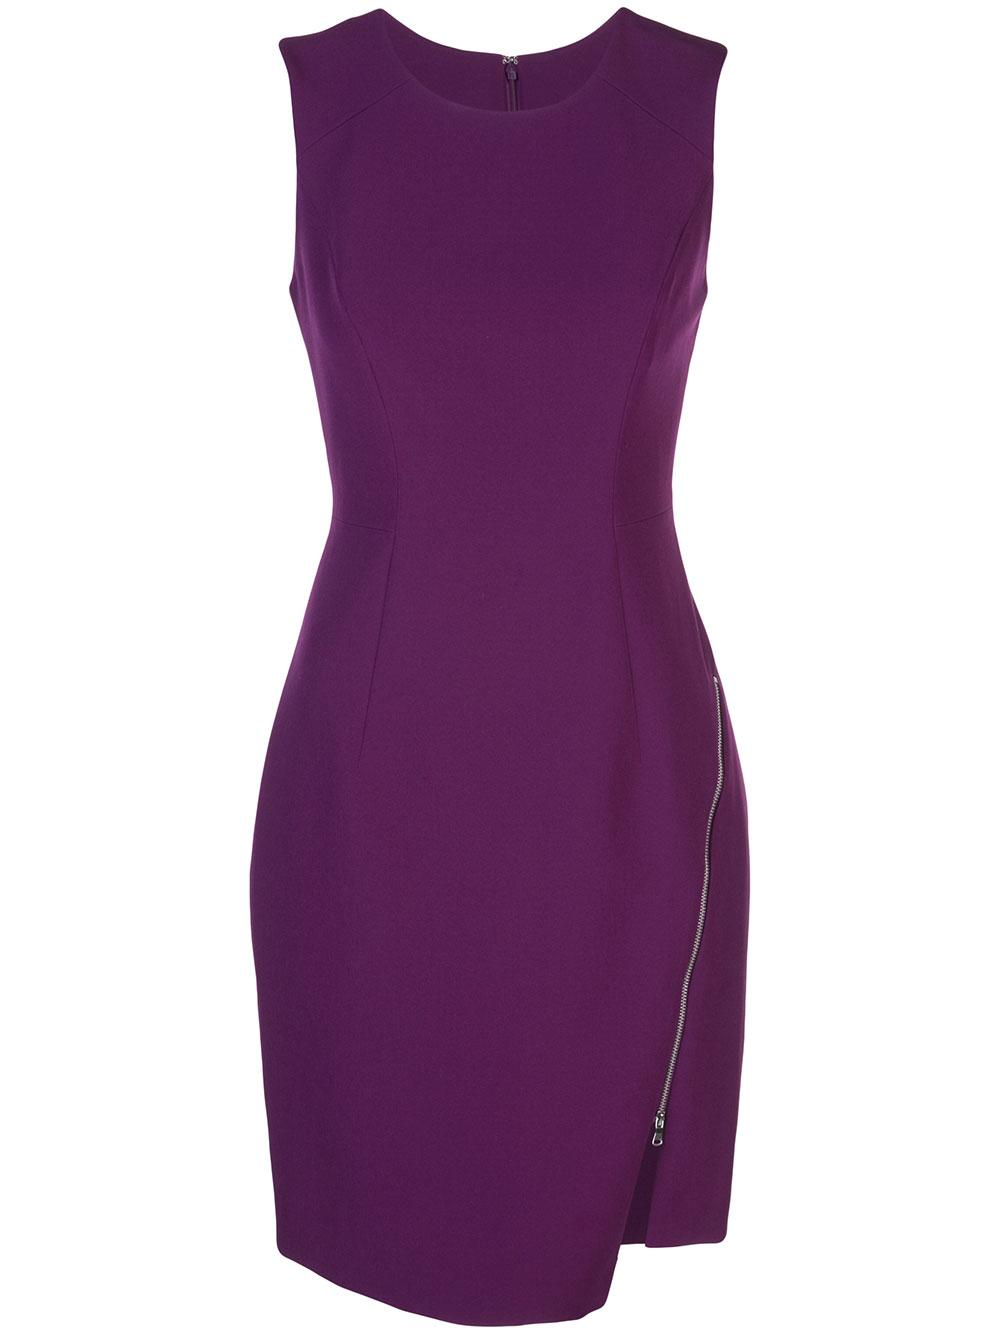 Sleeveless Zipper Sheath Item # 224IC012891